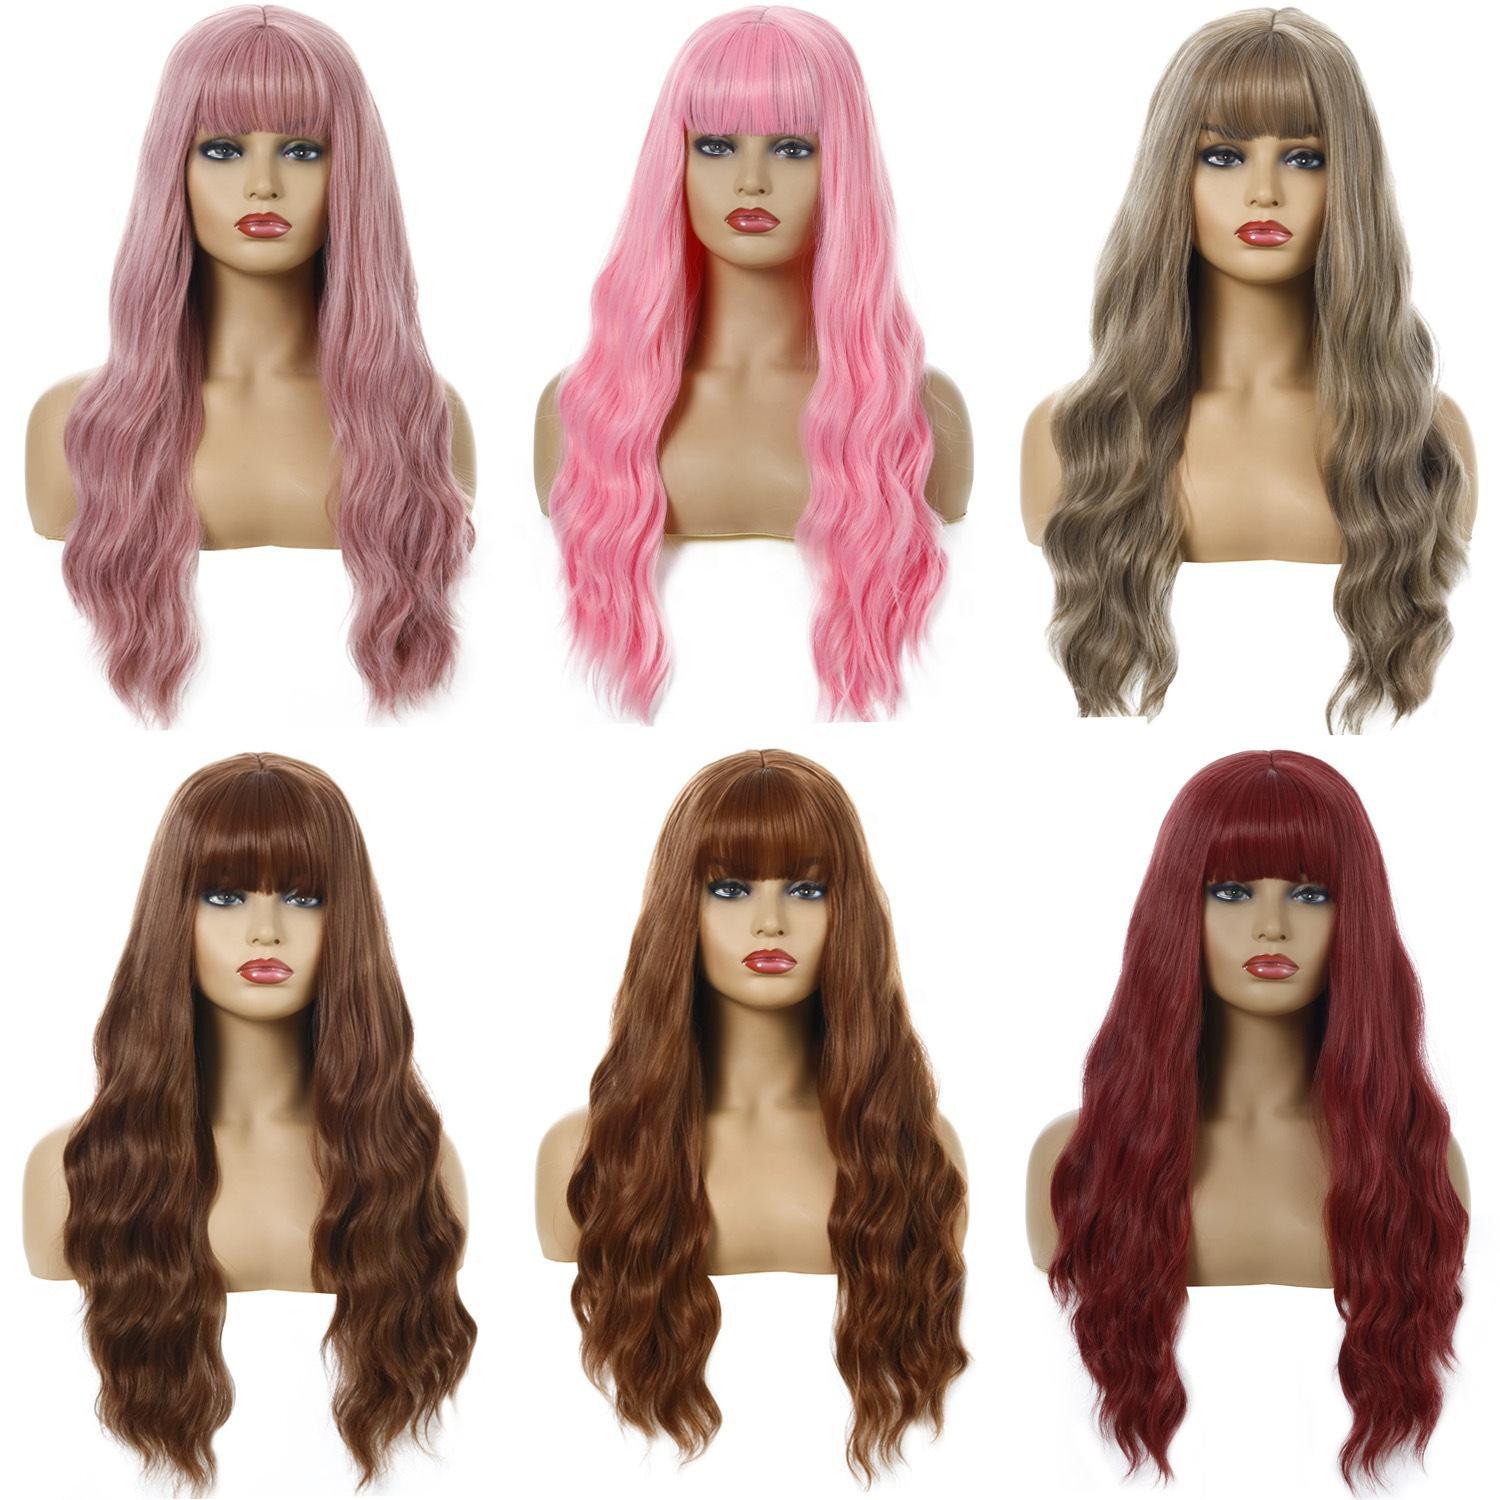 Ombre Wavy Wigs Black Brown Blonde Middle Part Cosplay Synthetic Wigs with Bangs For Women Long Hair Wigs